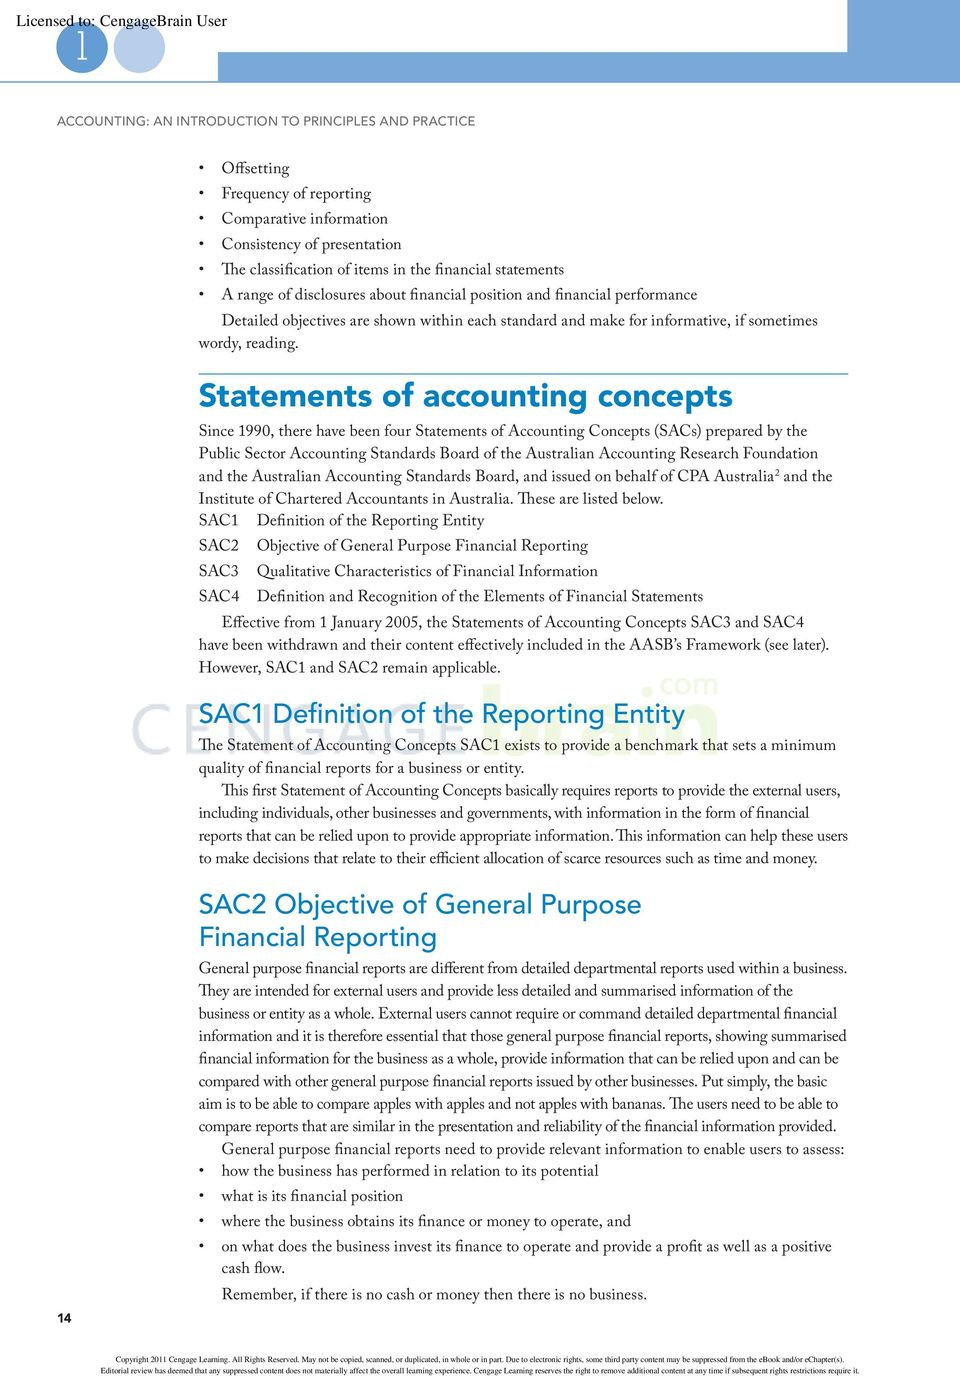 Statements of accounting concepts Since 990, there have been four Statements of Accounting Concepts (SACs) prepared by the Public Sector Accounting Standards Board of the Australian Accounting